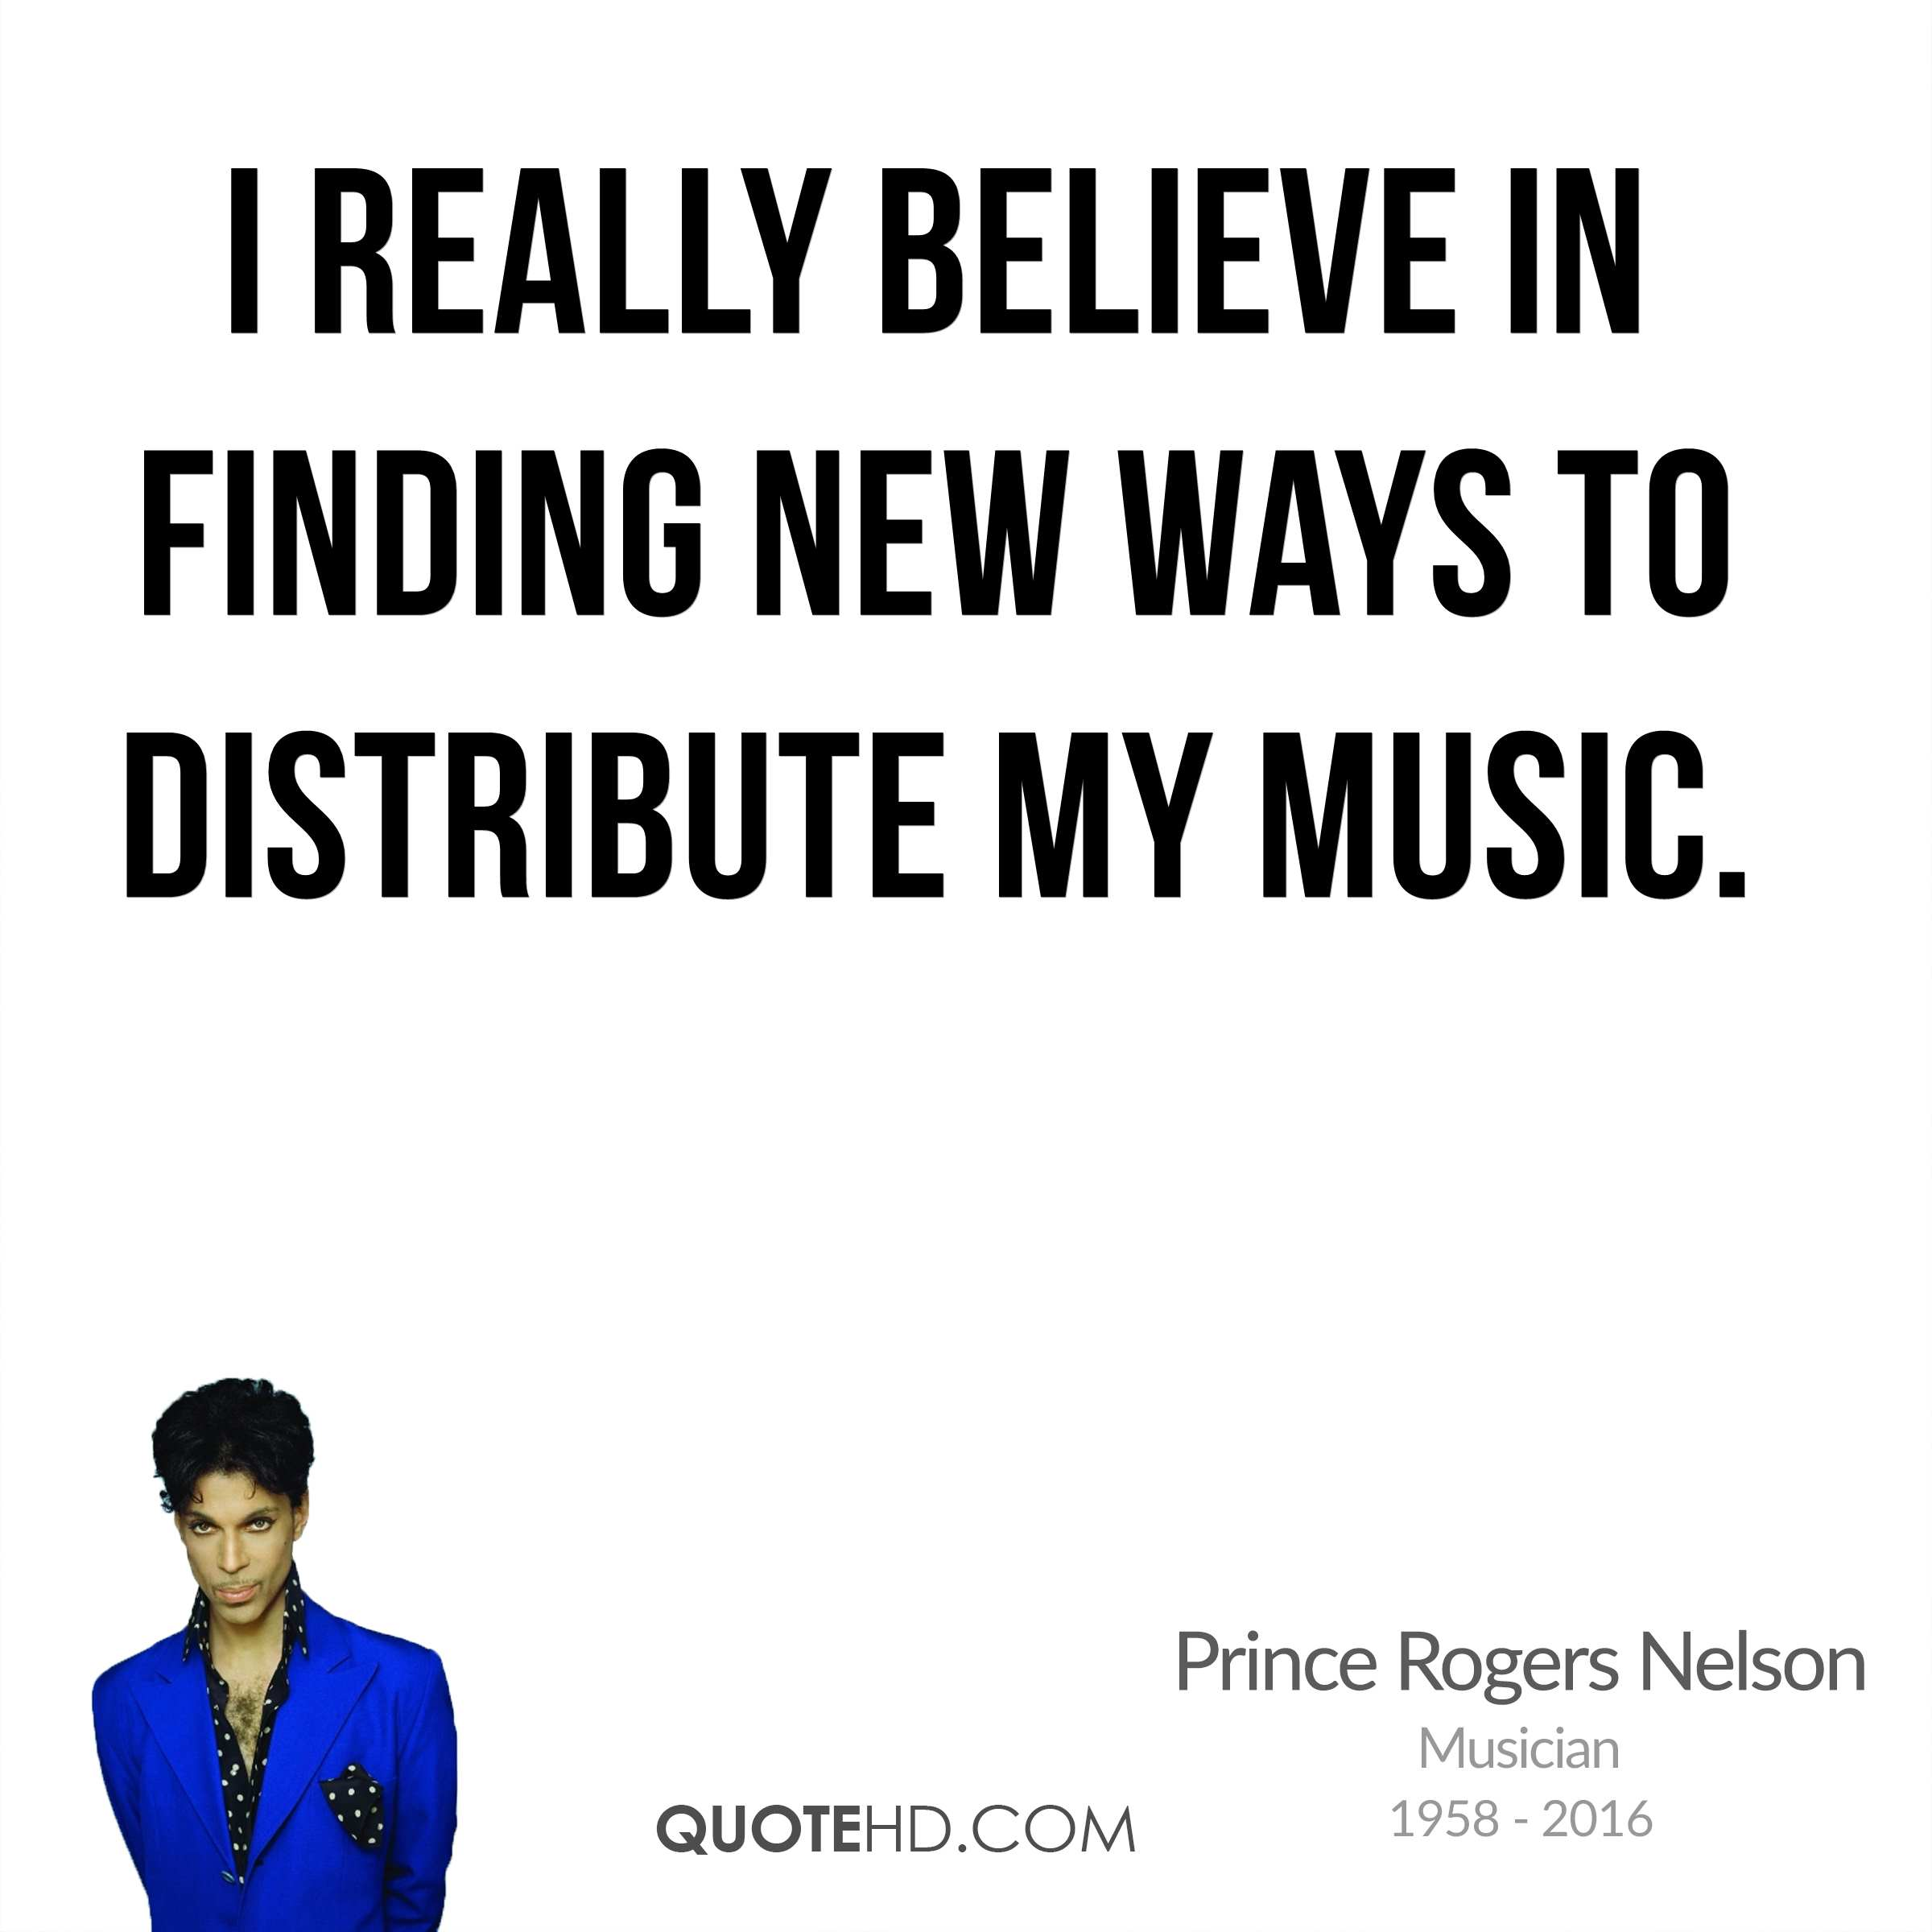 I really believe in finding new ways to distribute my music.